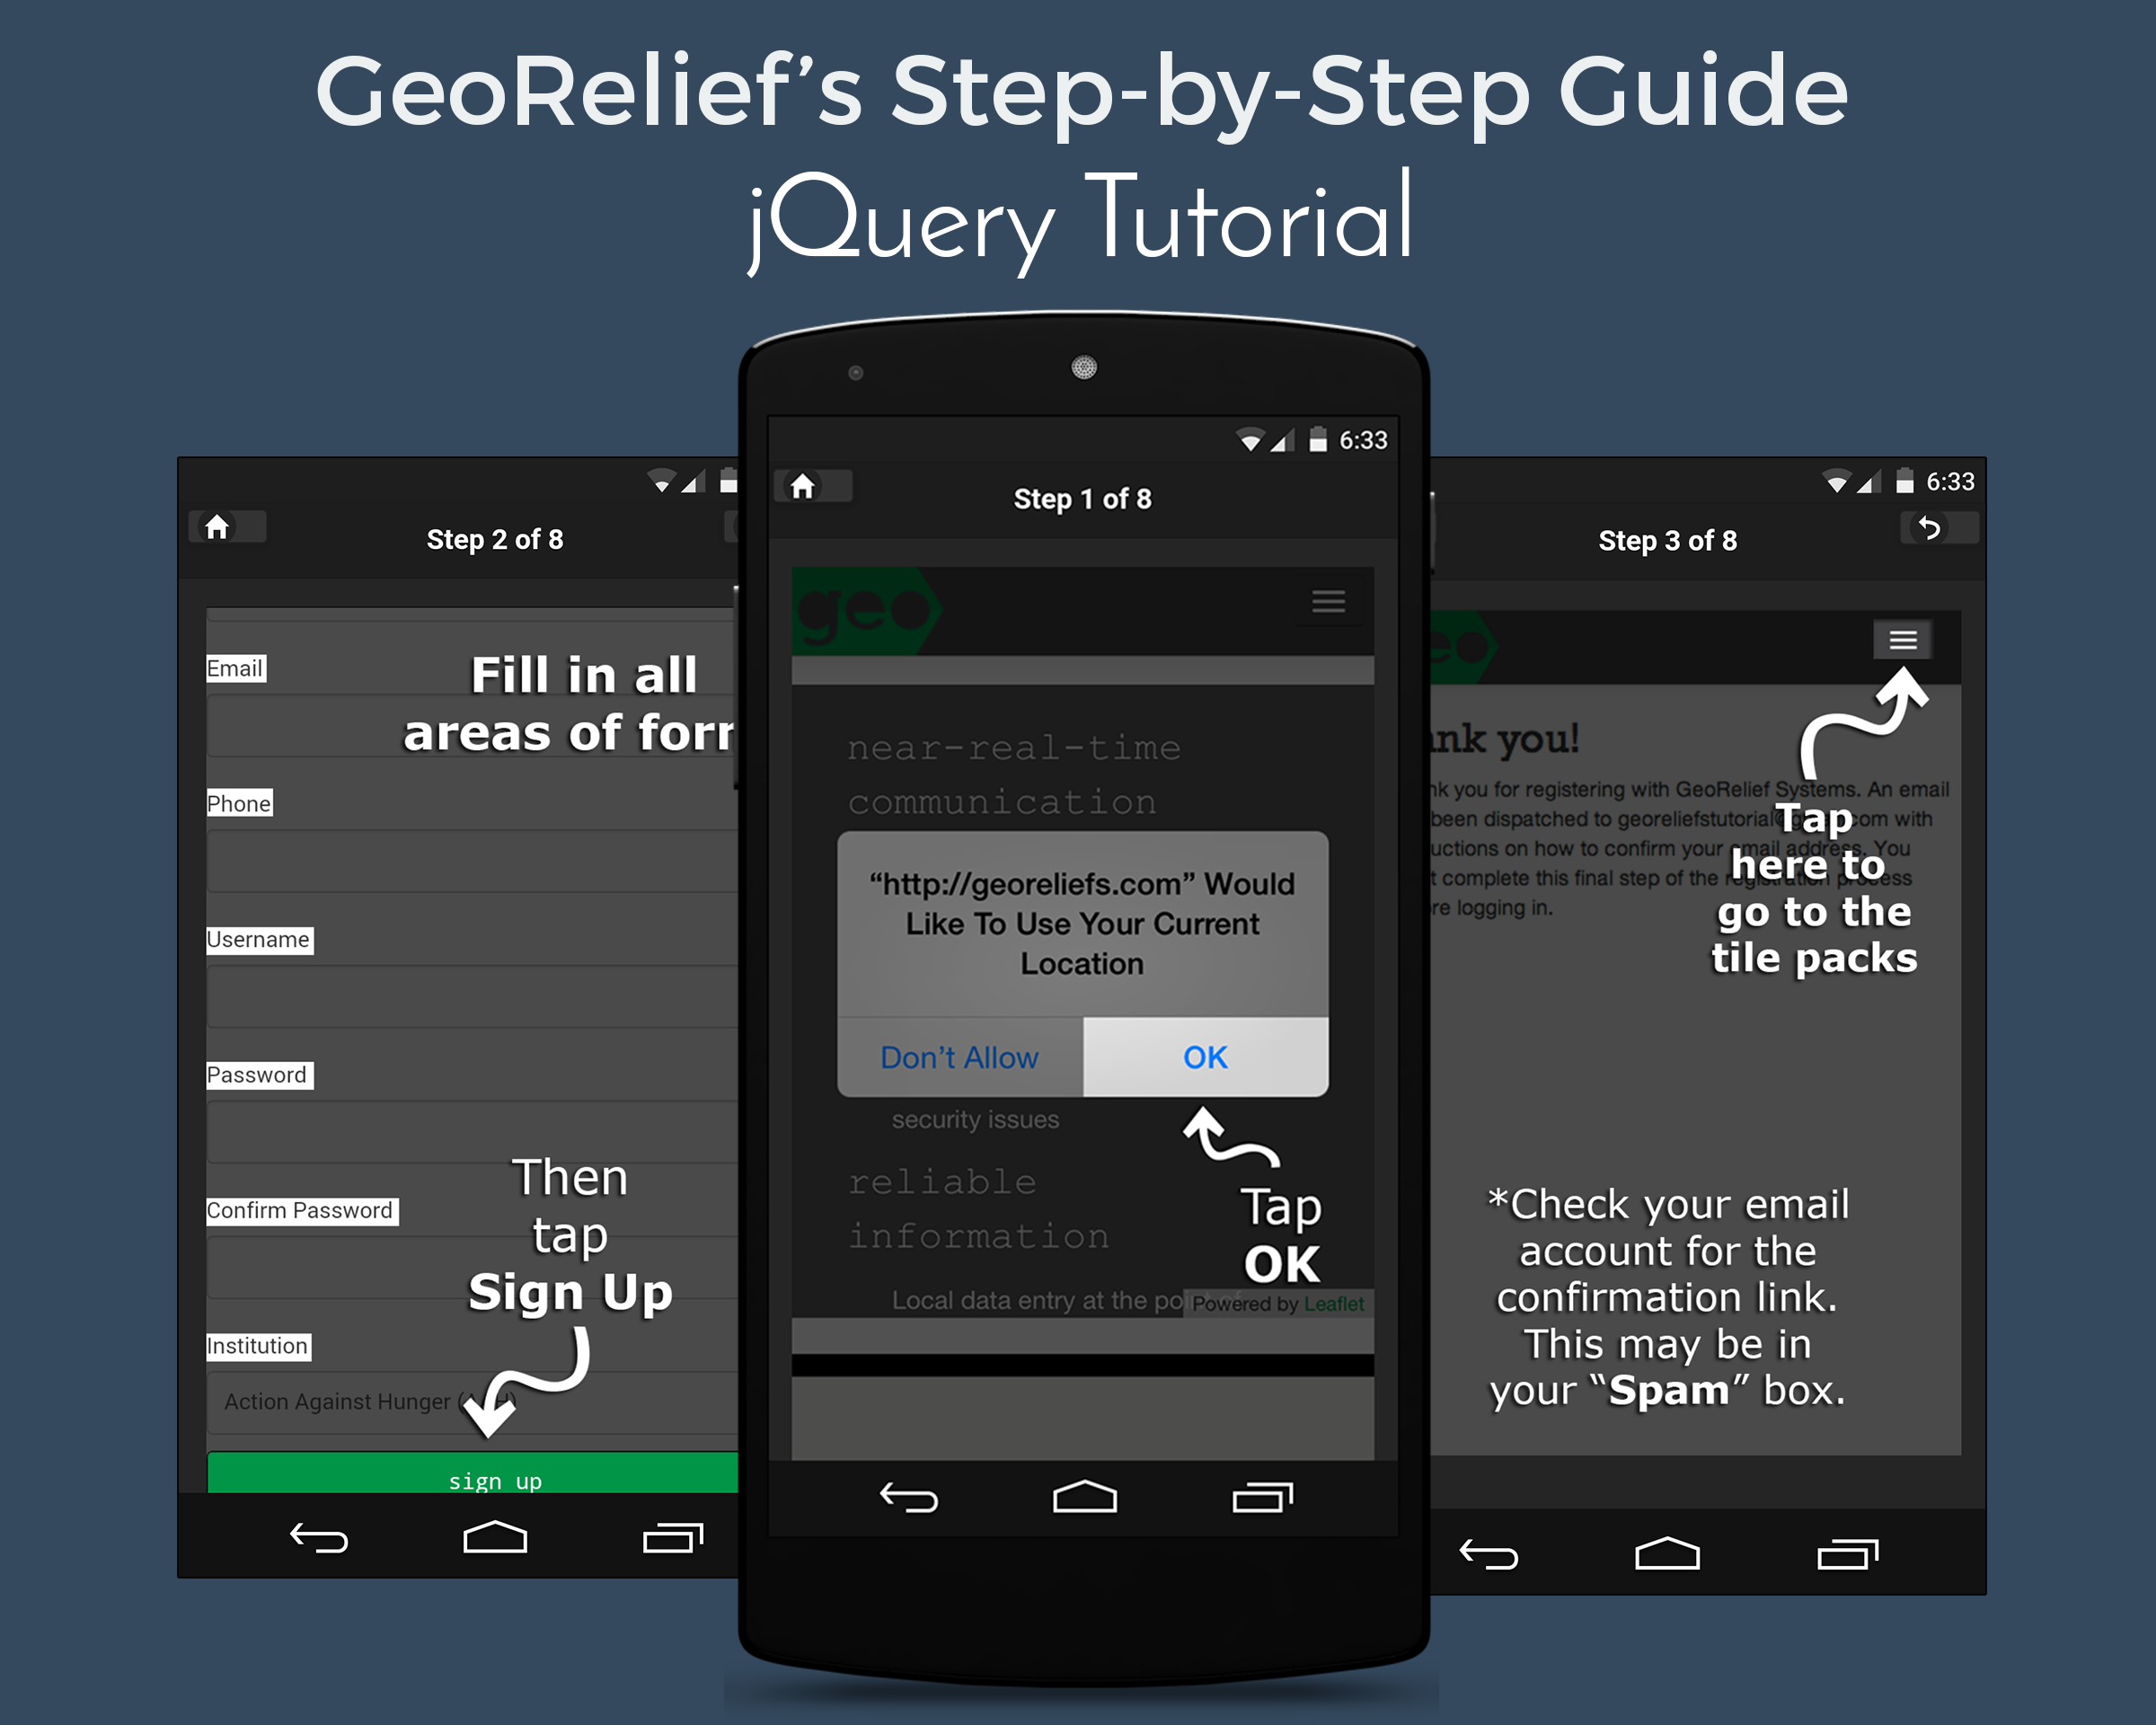 GeoReliefs Step-by-Step Guide